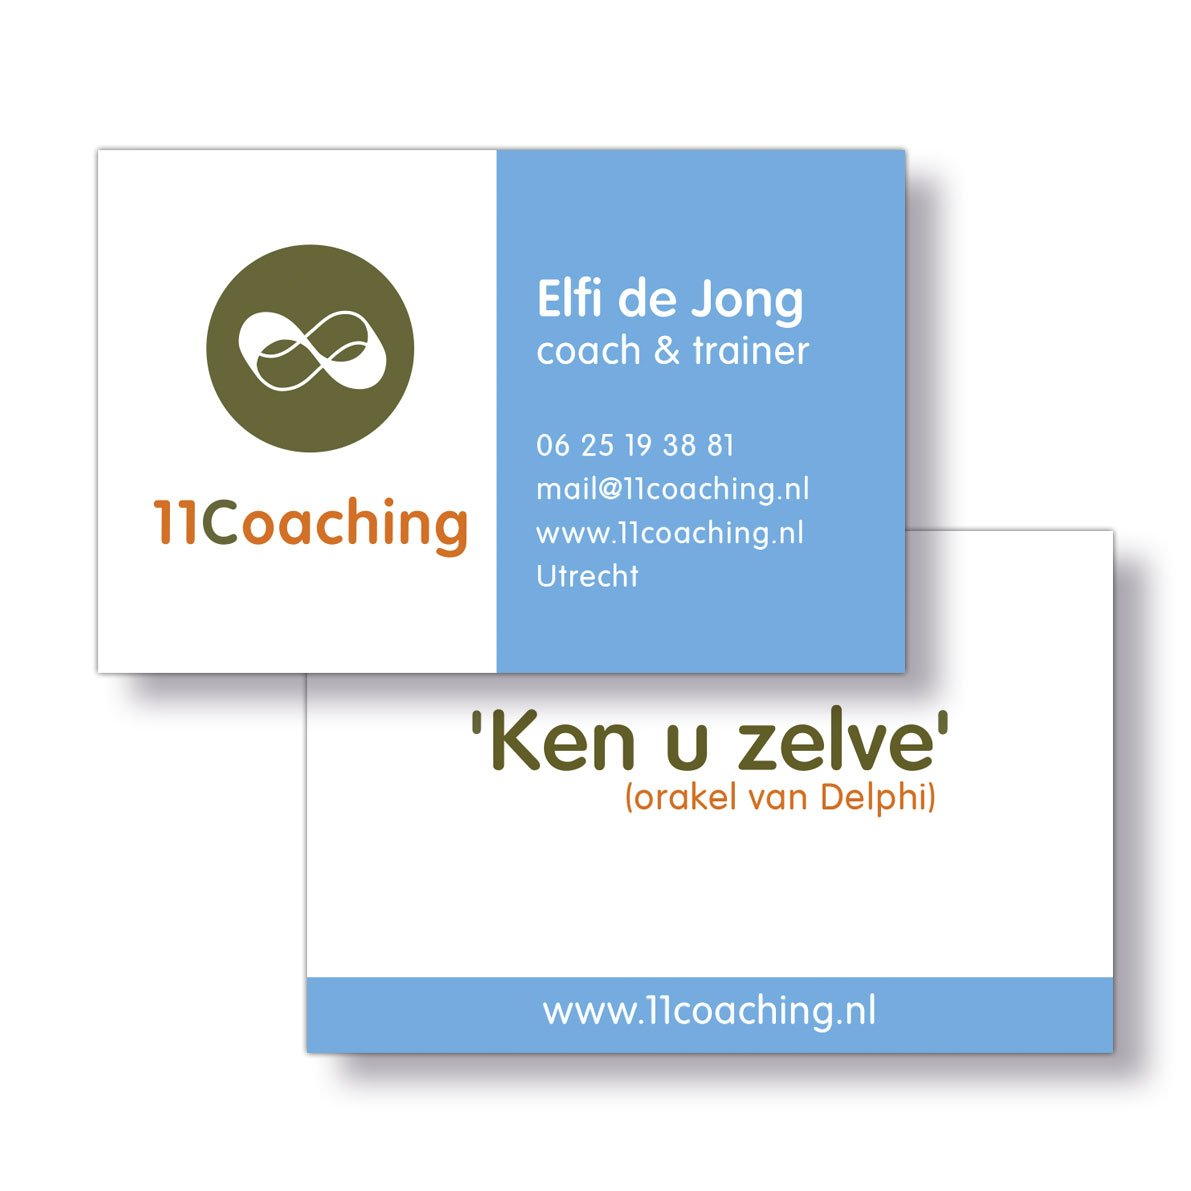 11coaching visitekaart